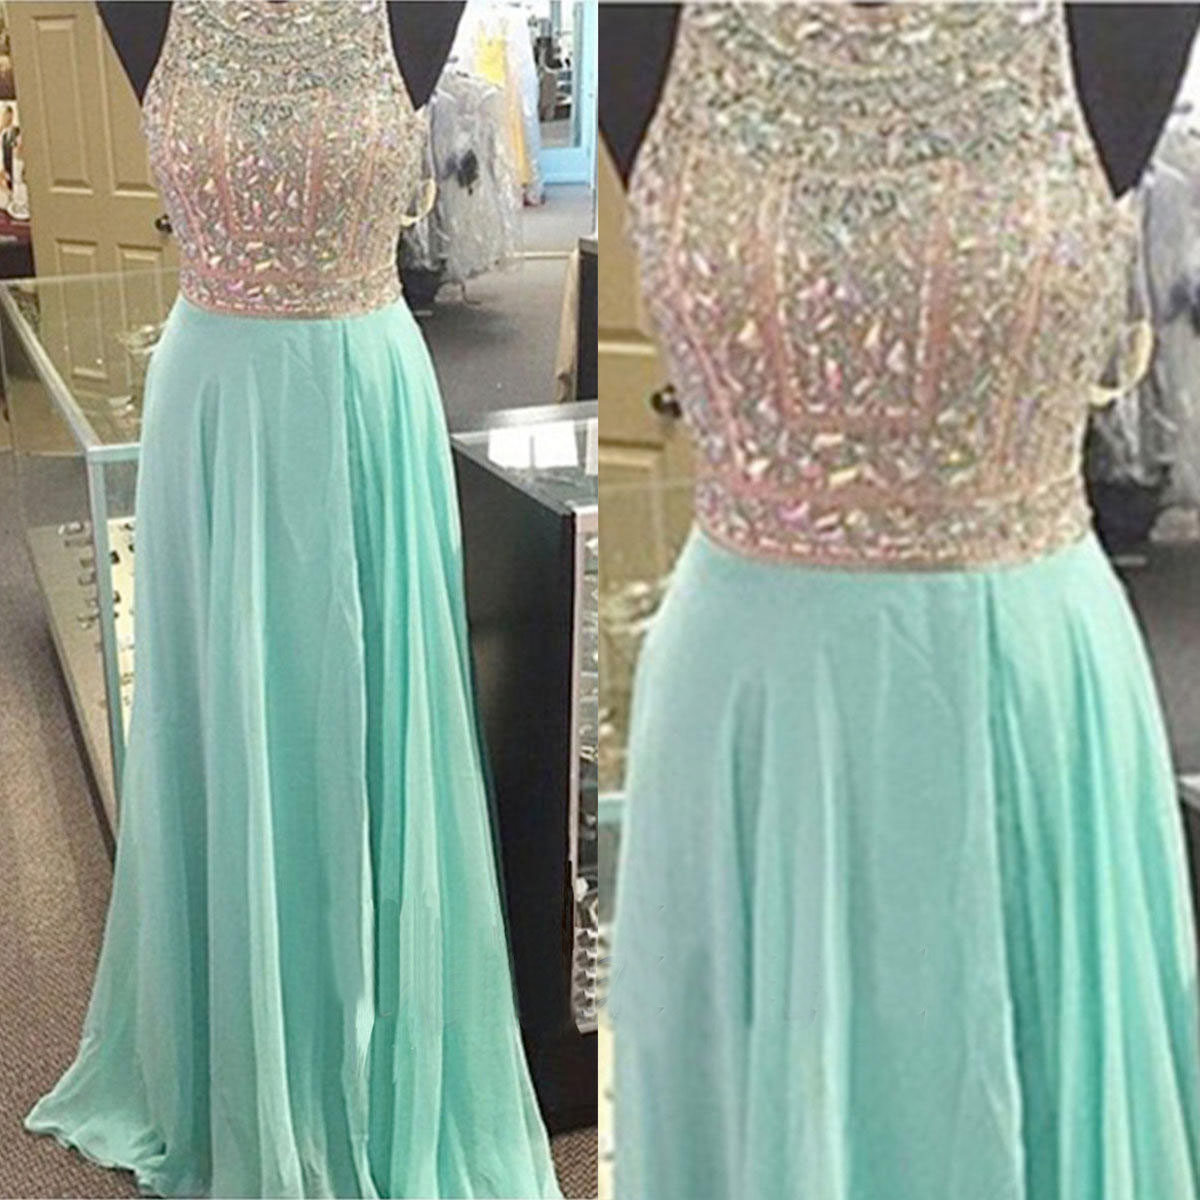 Rhinestone Prom Dresses Mint Prom Dress Sexy Prom Dresses Cheap Prom ...